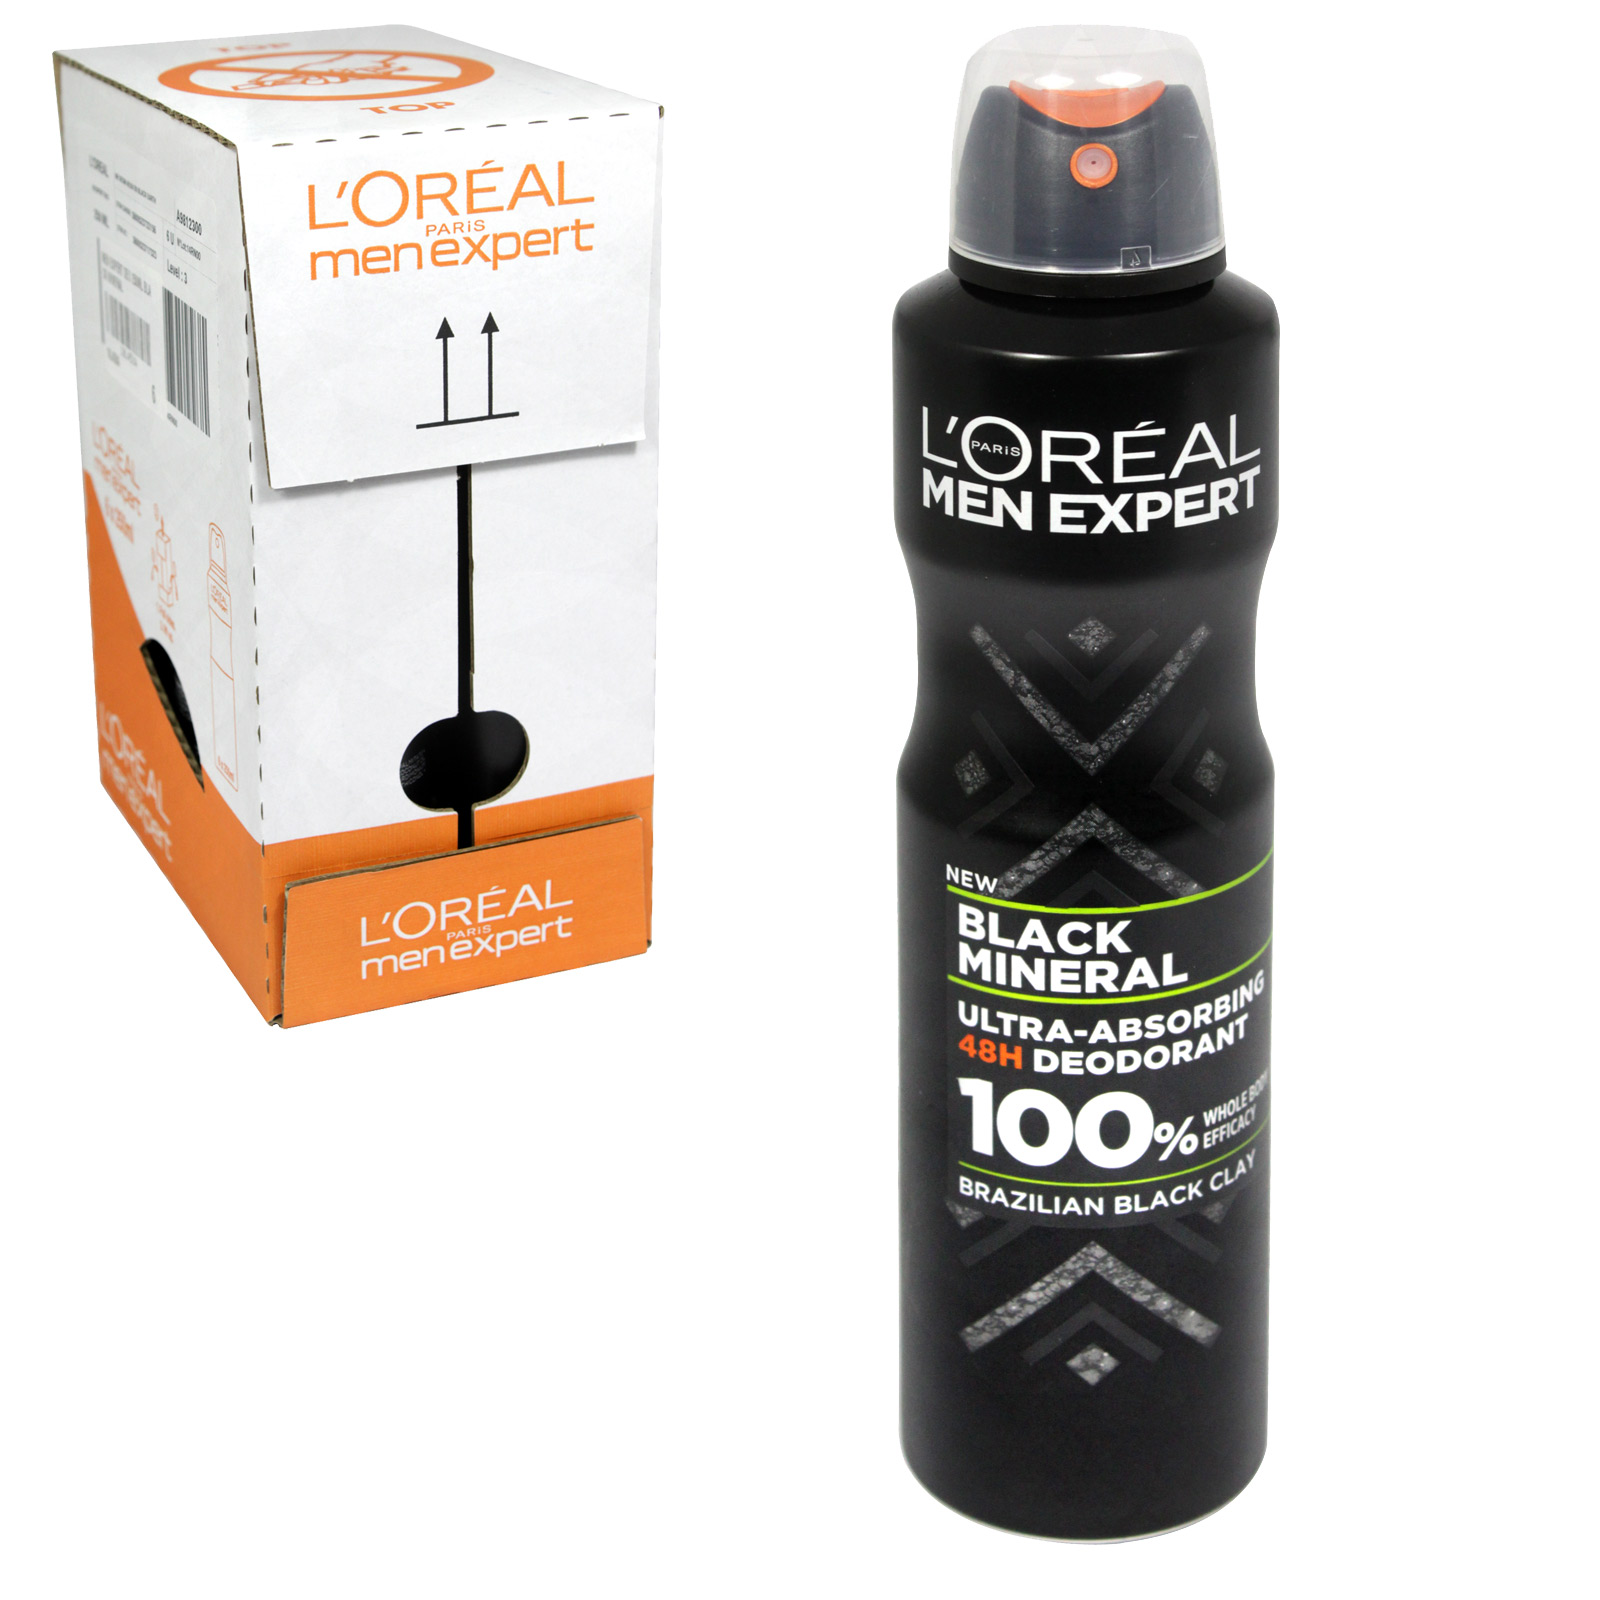 LOREAL MEN EXPERT DEO 250ML BLACK MINERAL X6